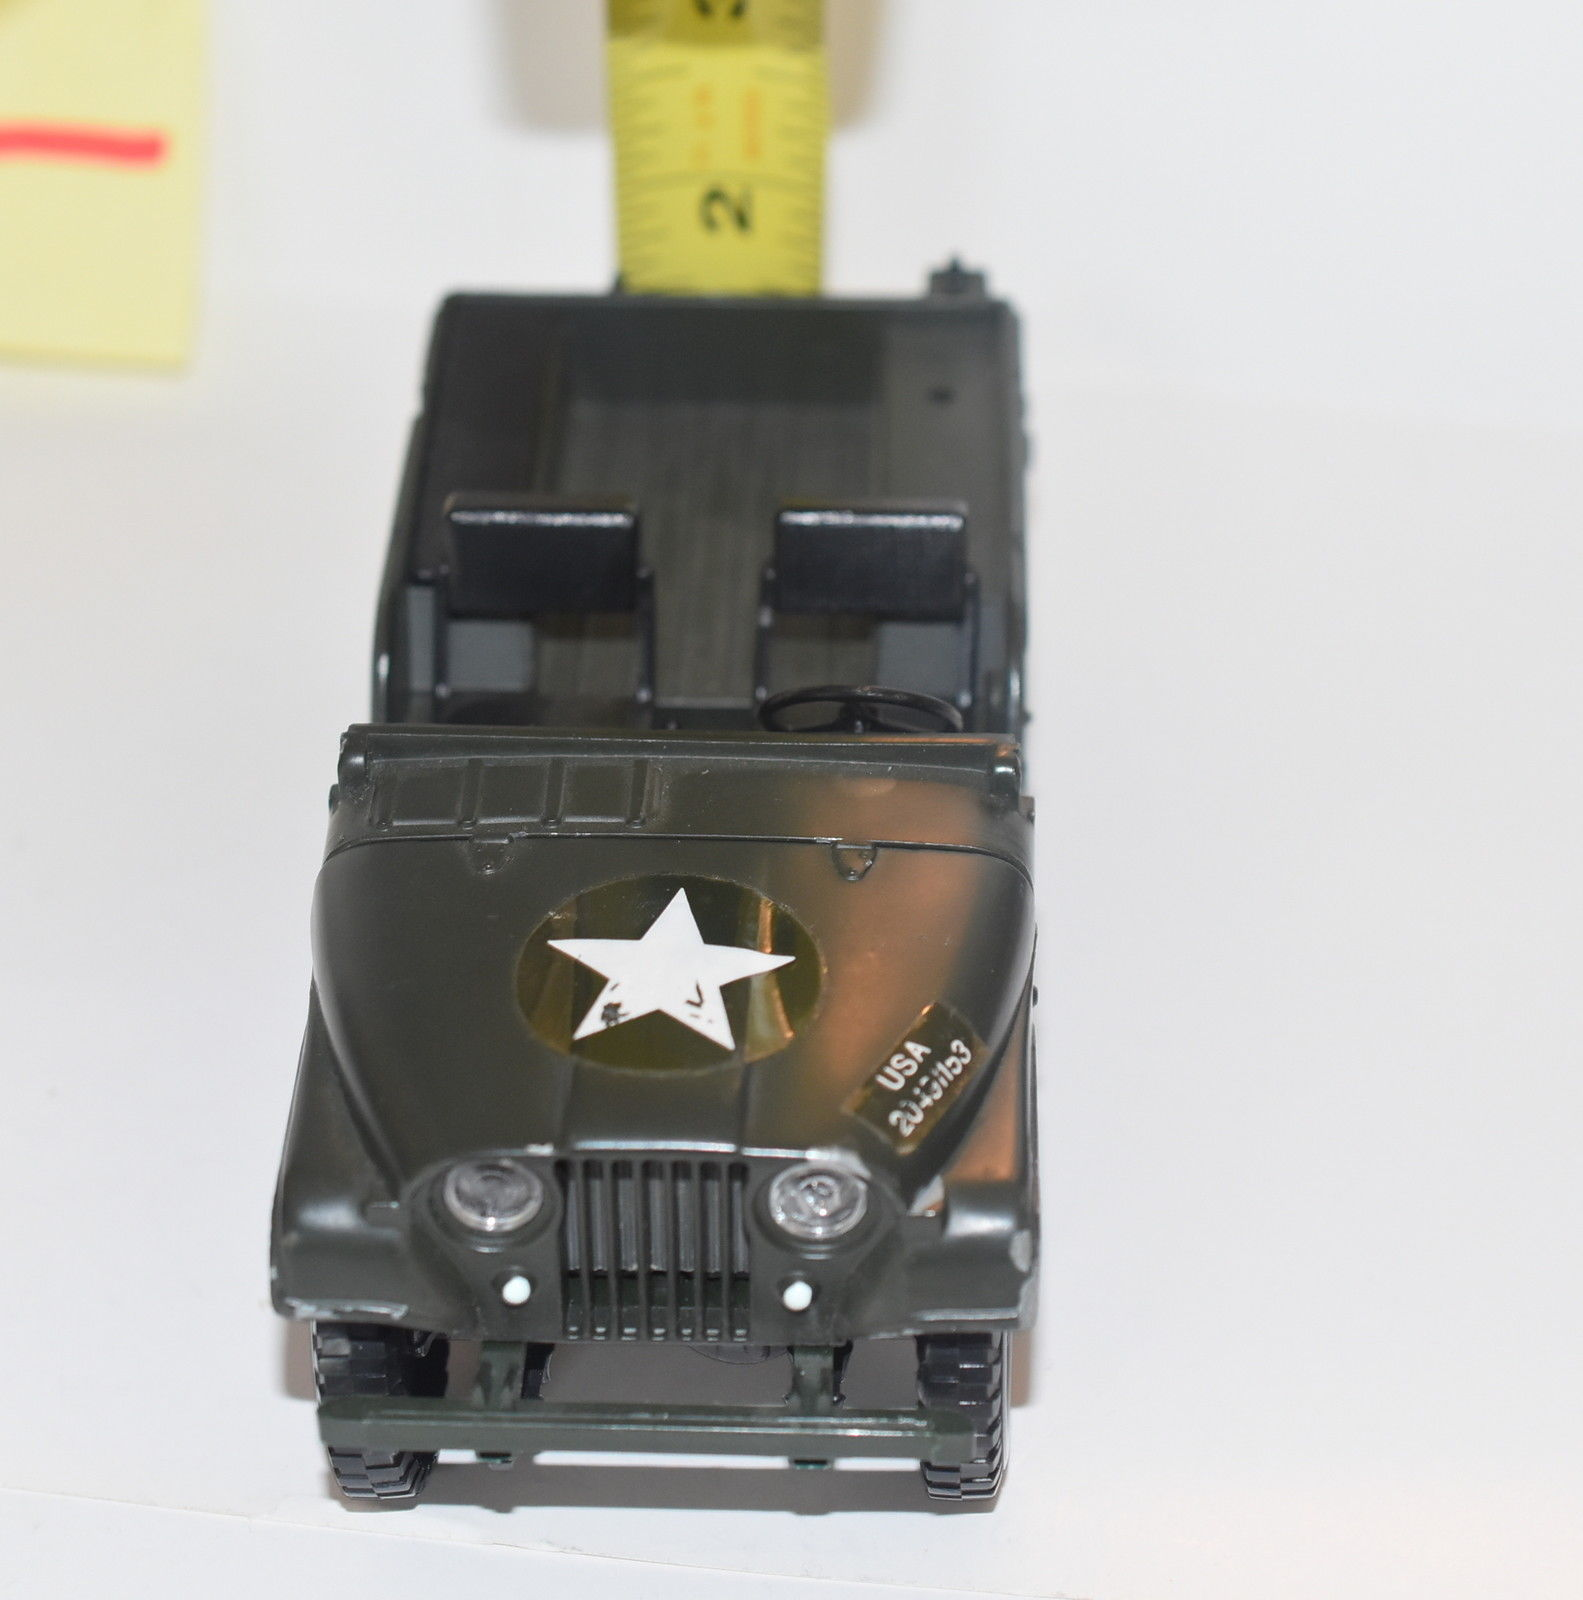 MATTEL MEBE TOYS MILITARY JEEP WILLYS MADE IN ITALY SCALE 1/25 - LOOSE